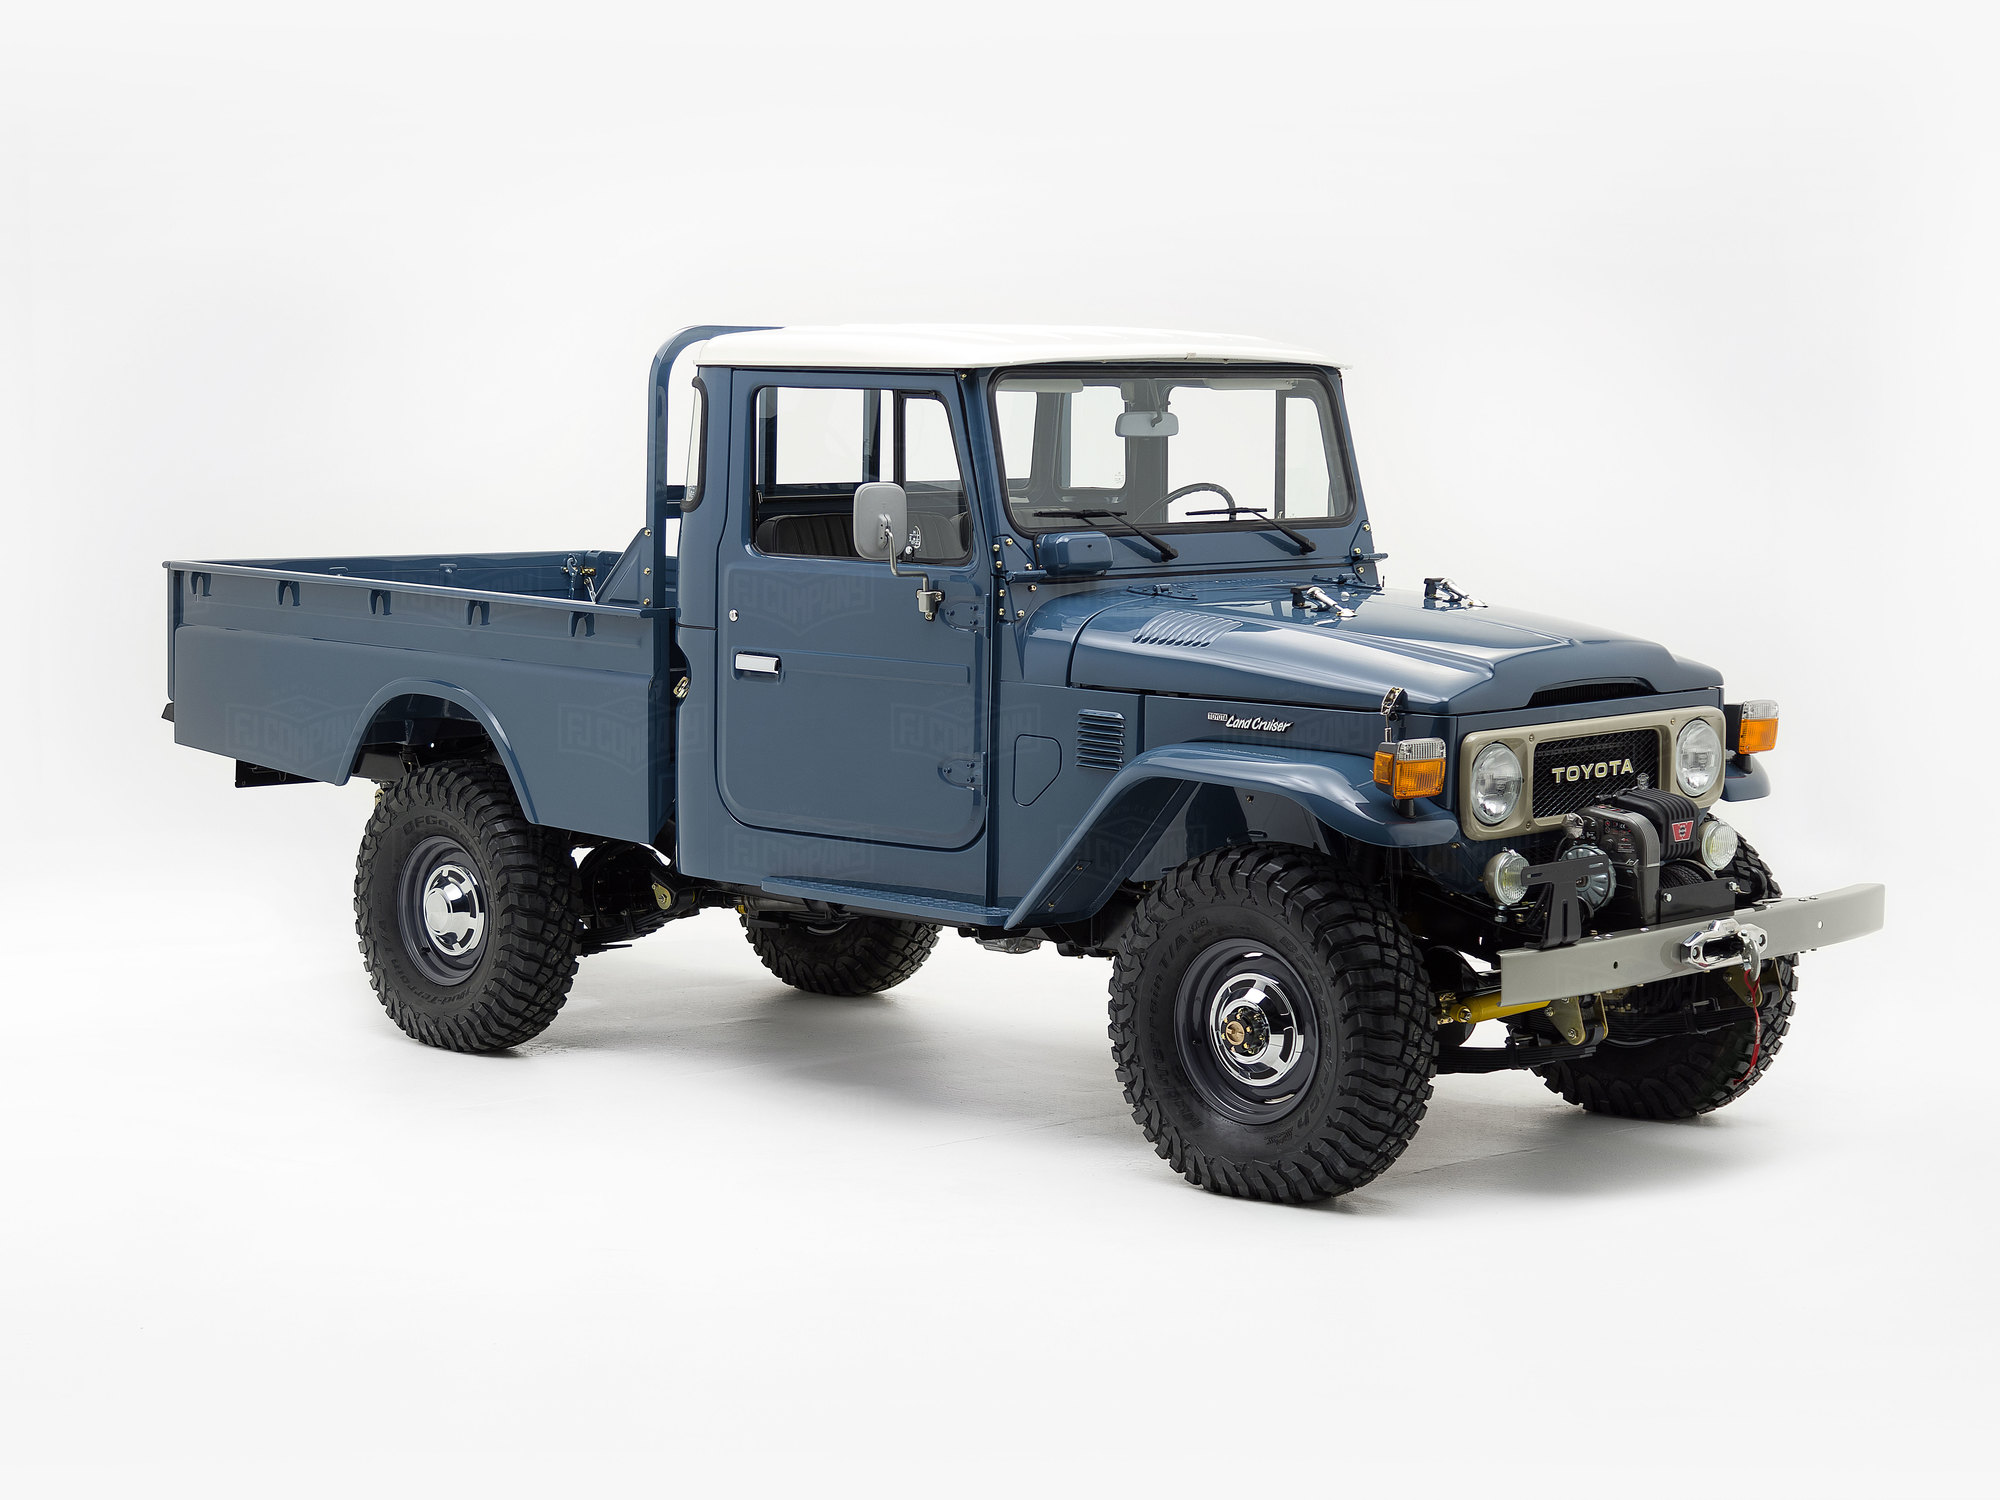 This FJ45 pick-up is coming back to life